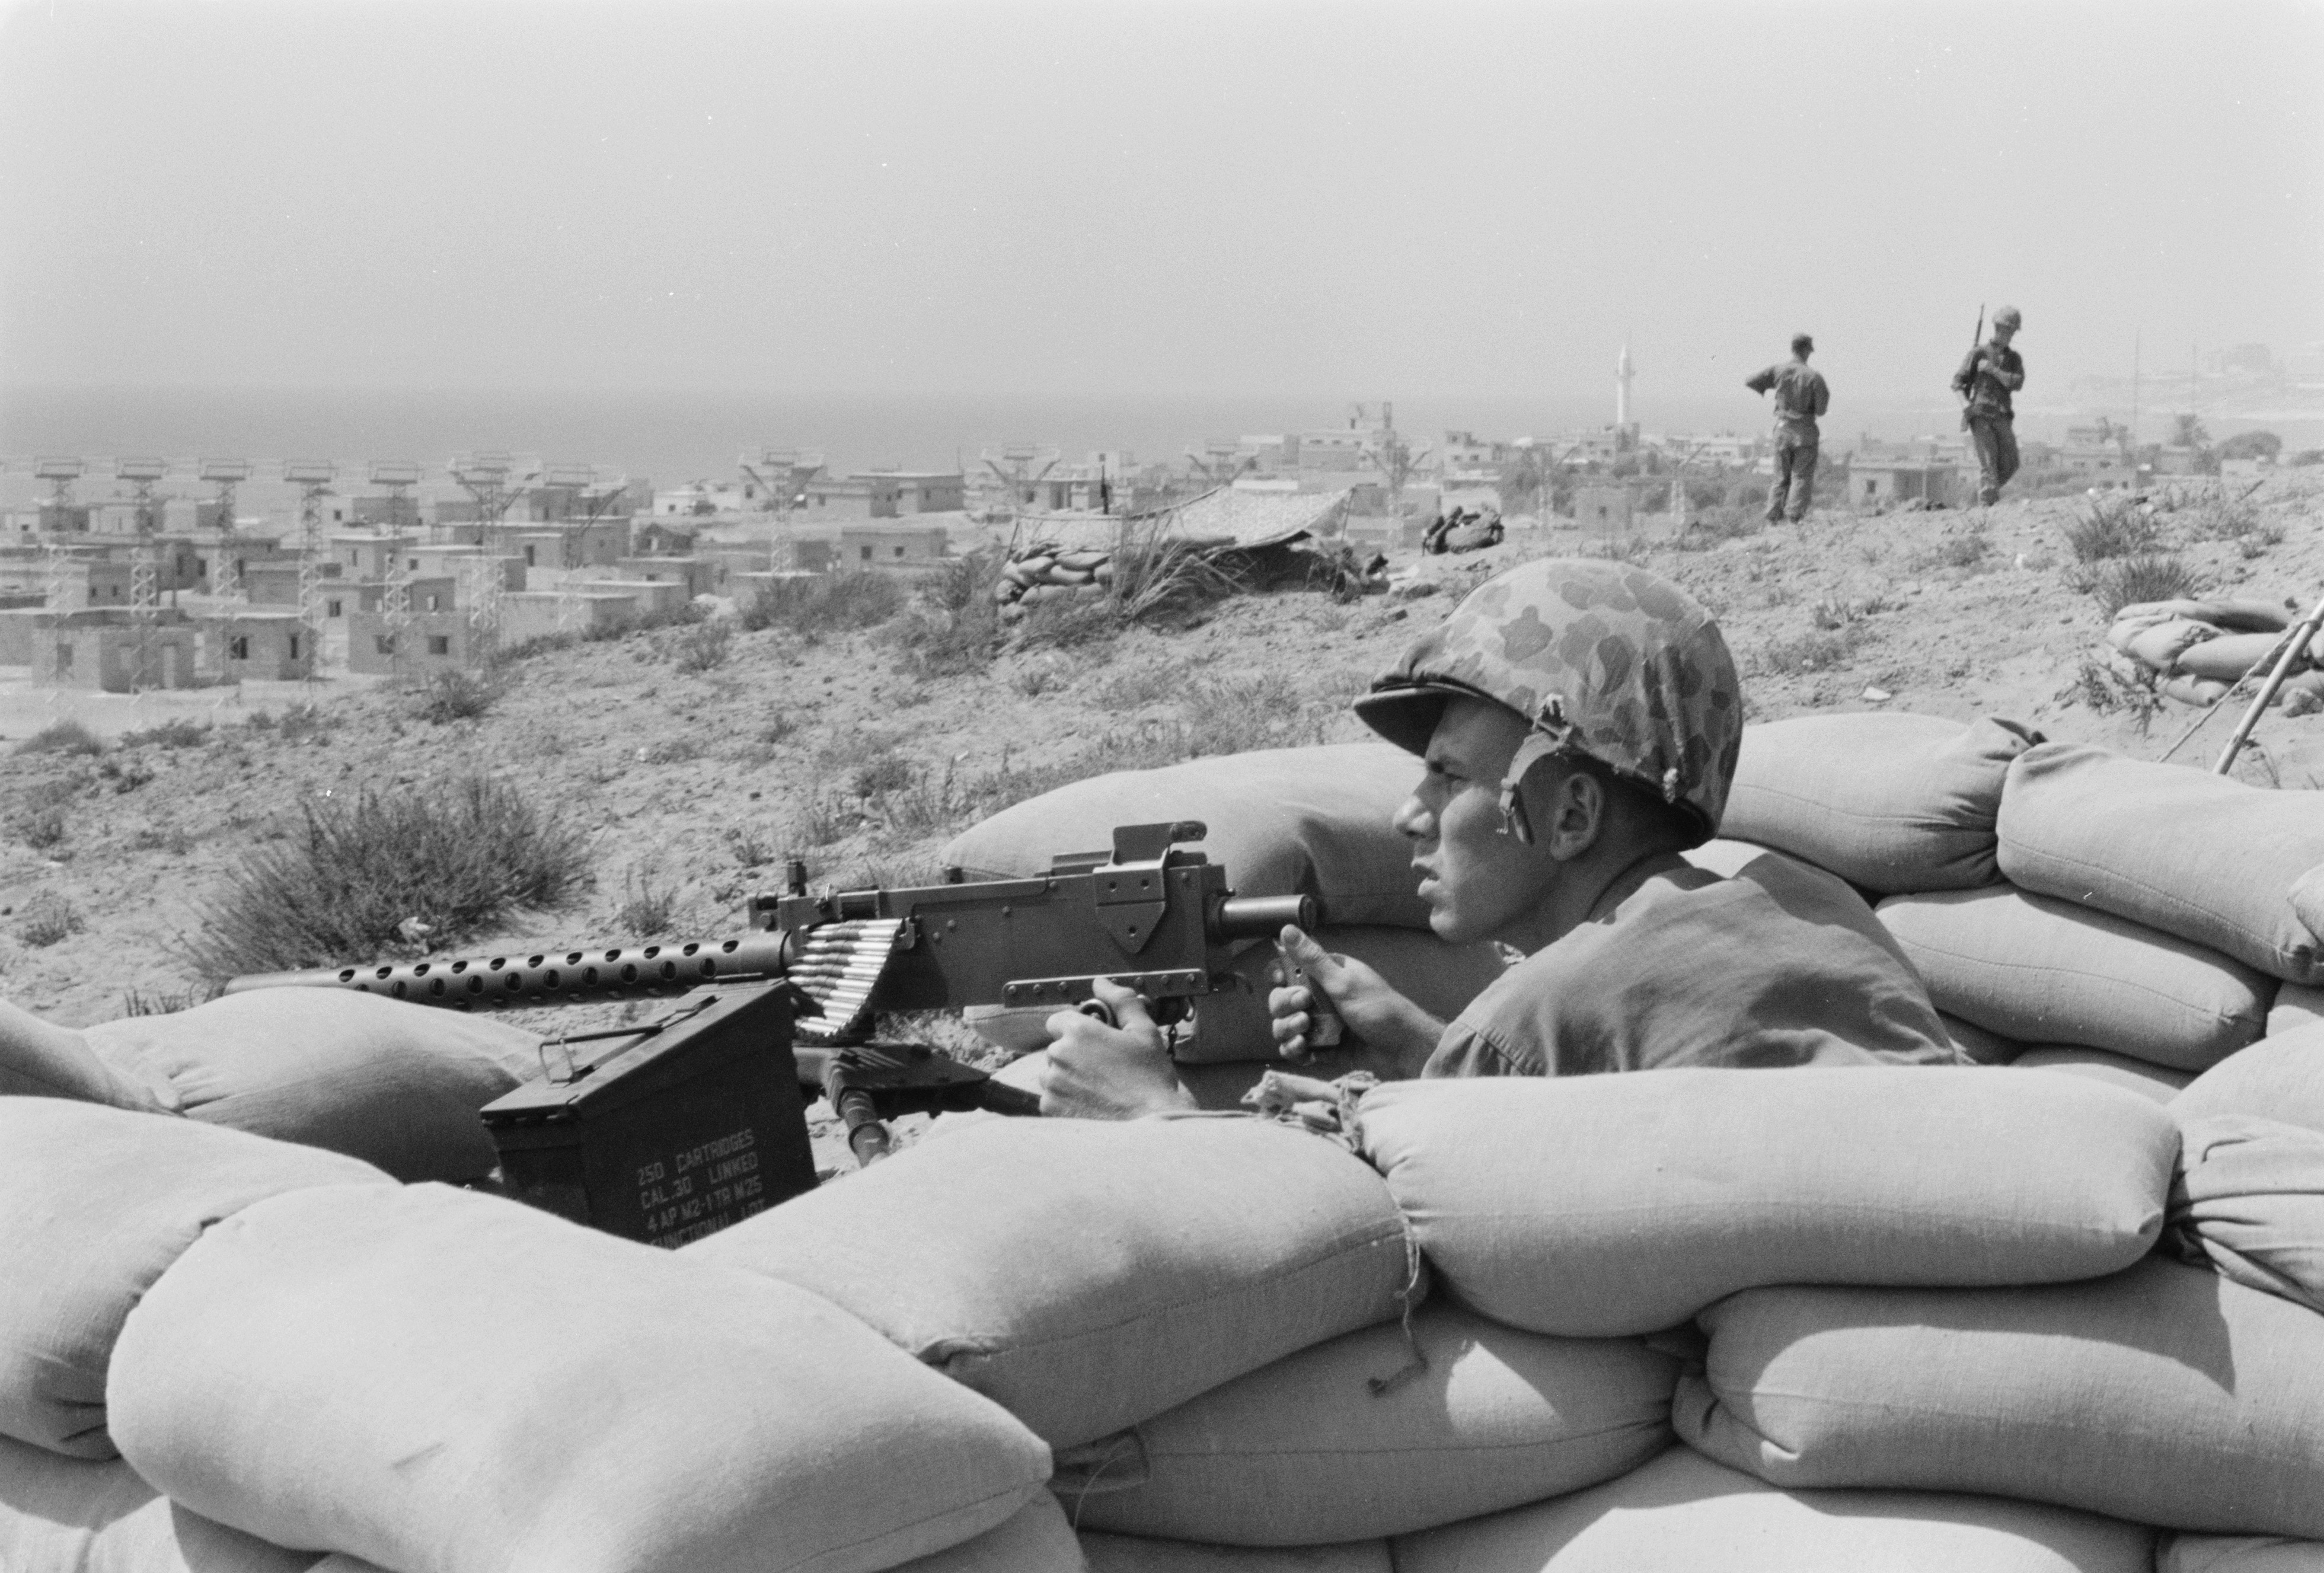 U.S. Marine in Beirut with M1919A4, July, 1958